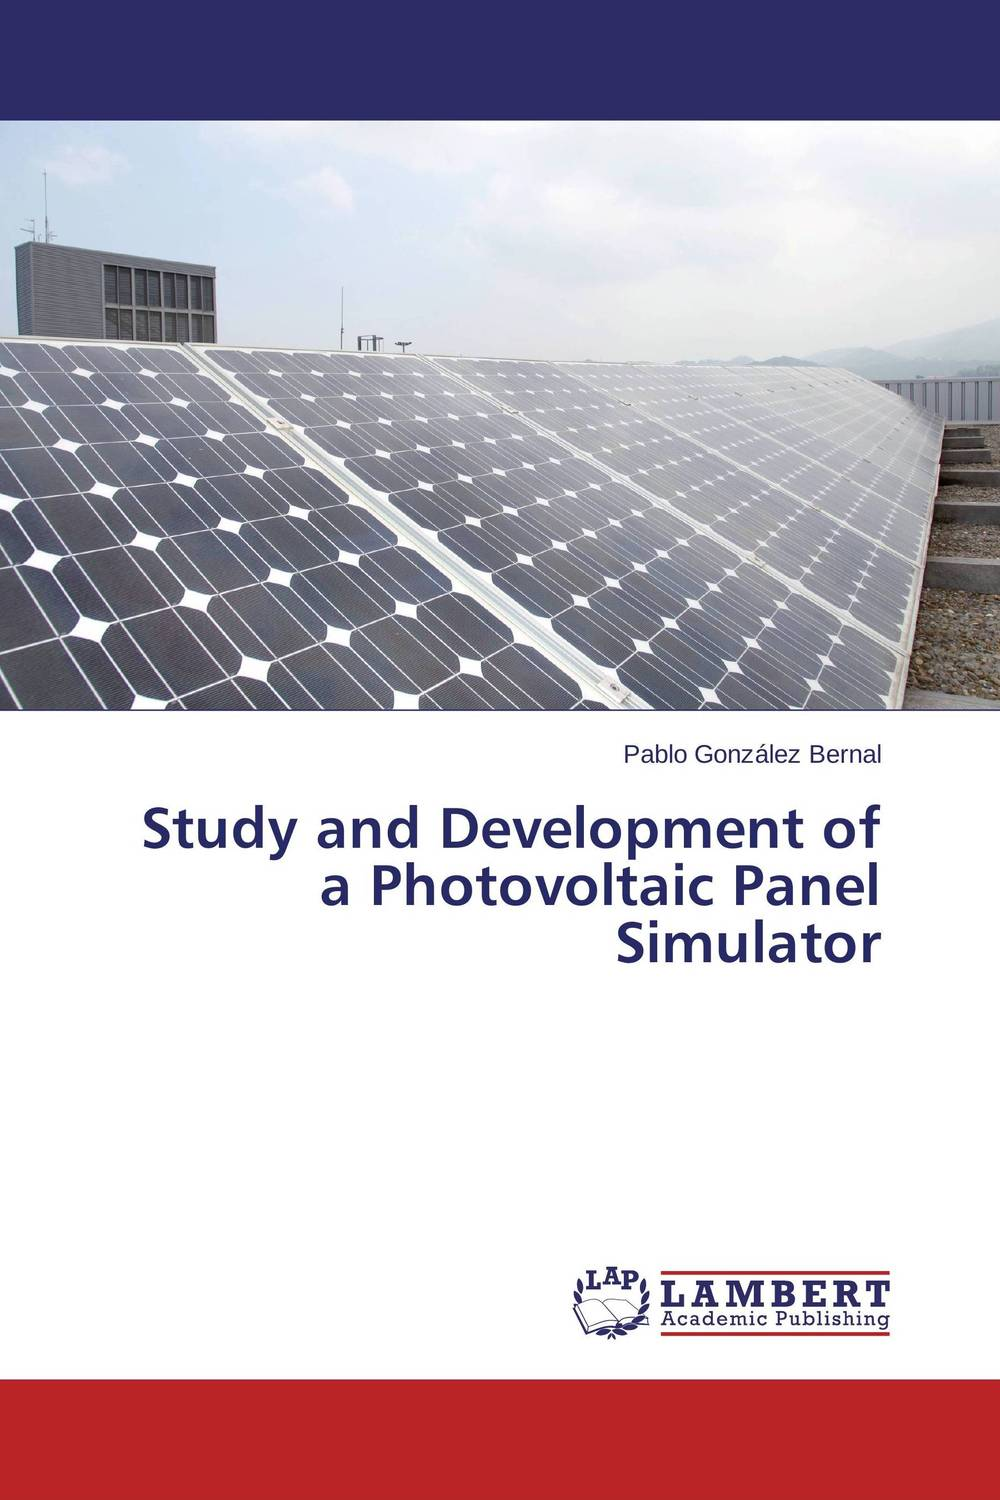 Study and Development of a Photovoltaic Panel Simulator jen fei loh and sujan debnath origami and its application in solar panel design